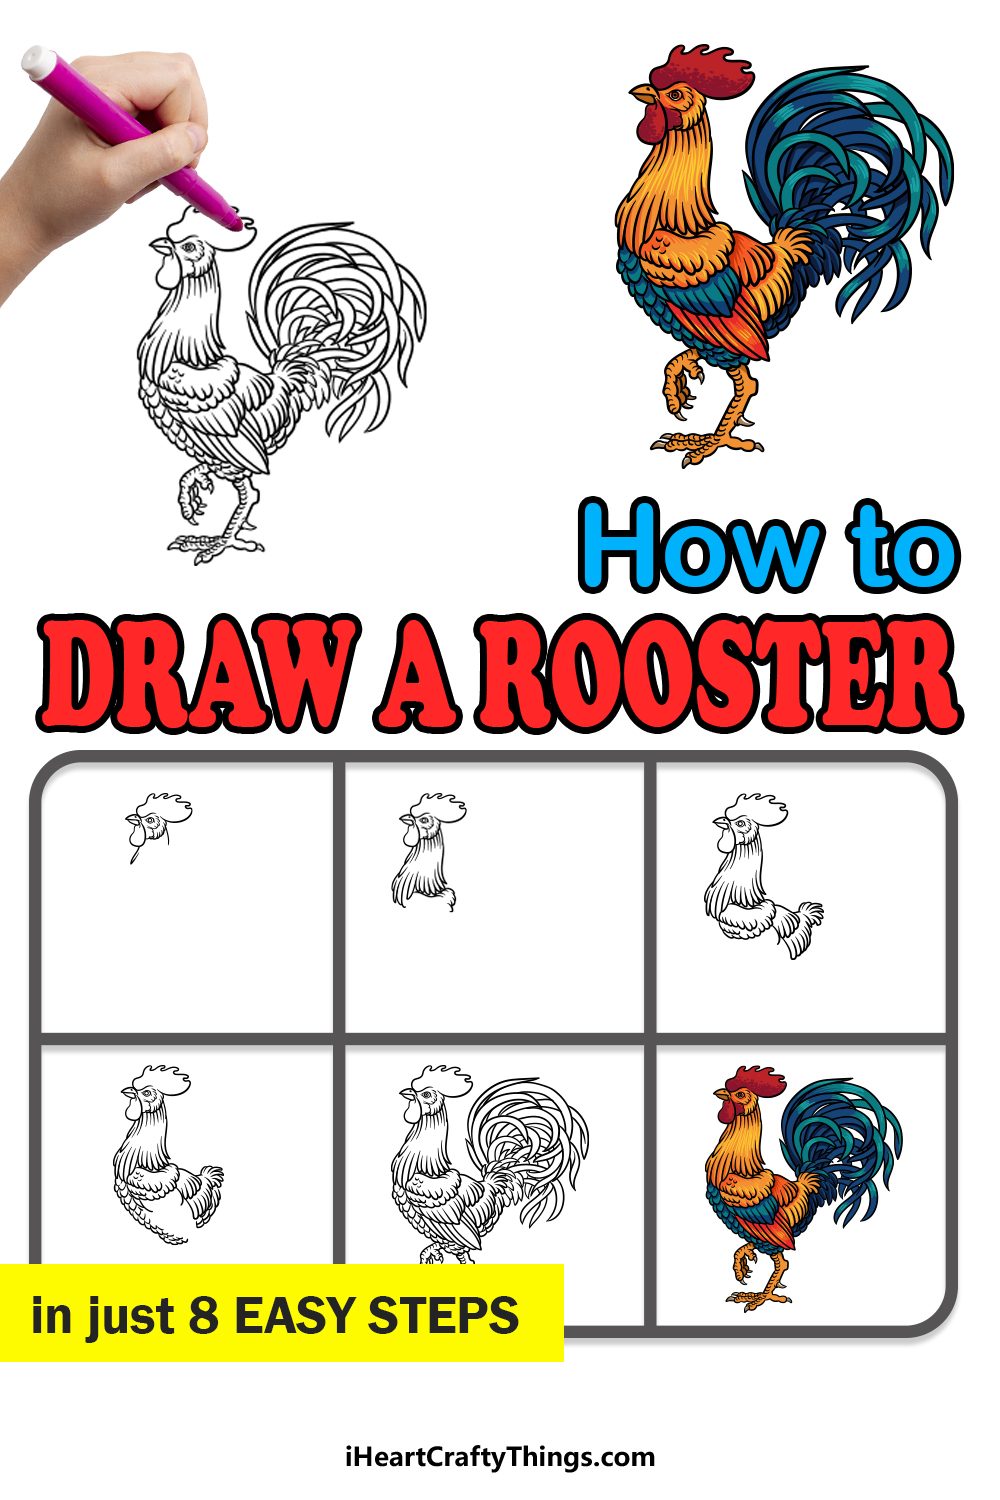 how to draw a rooster in 8 easy steps